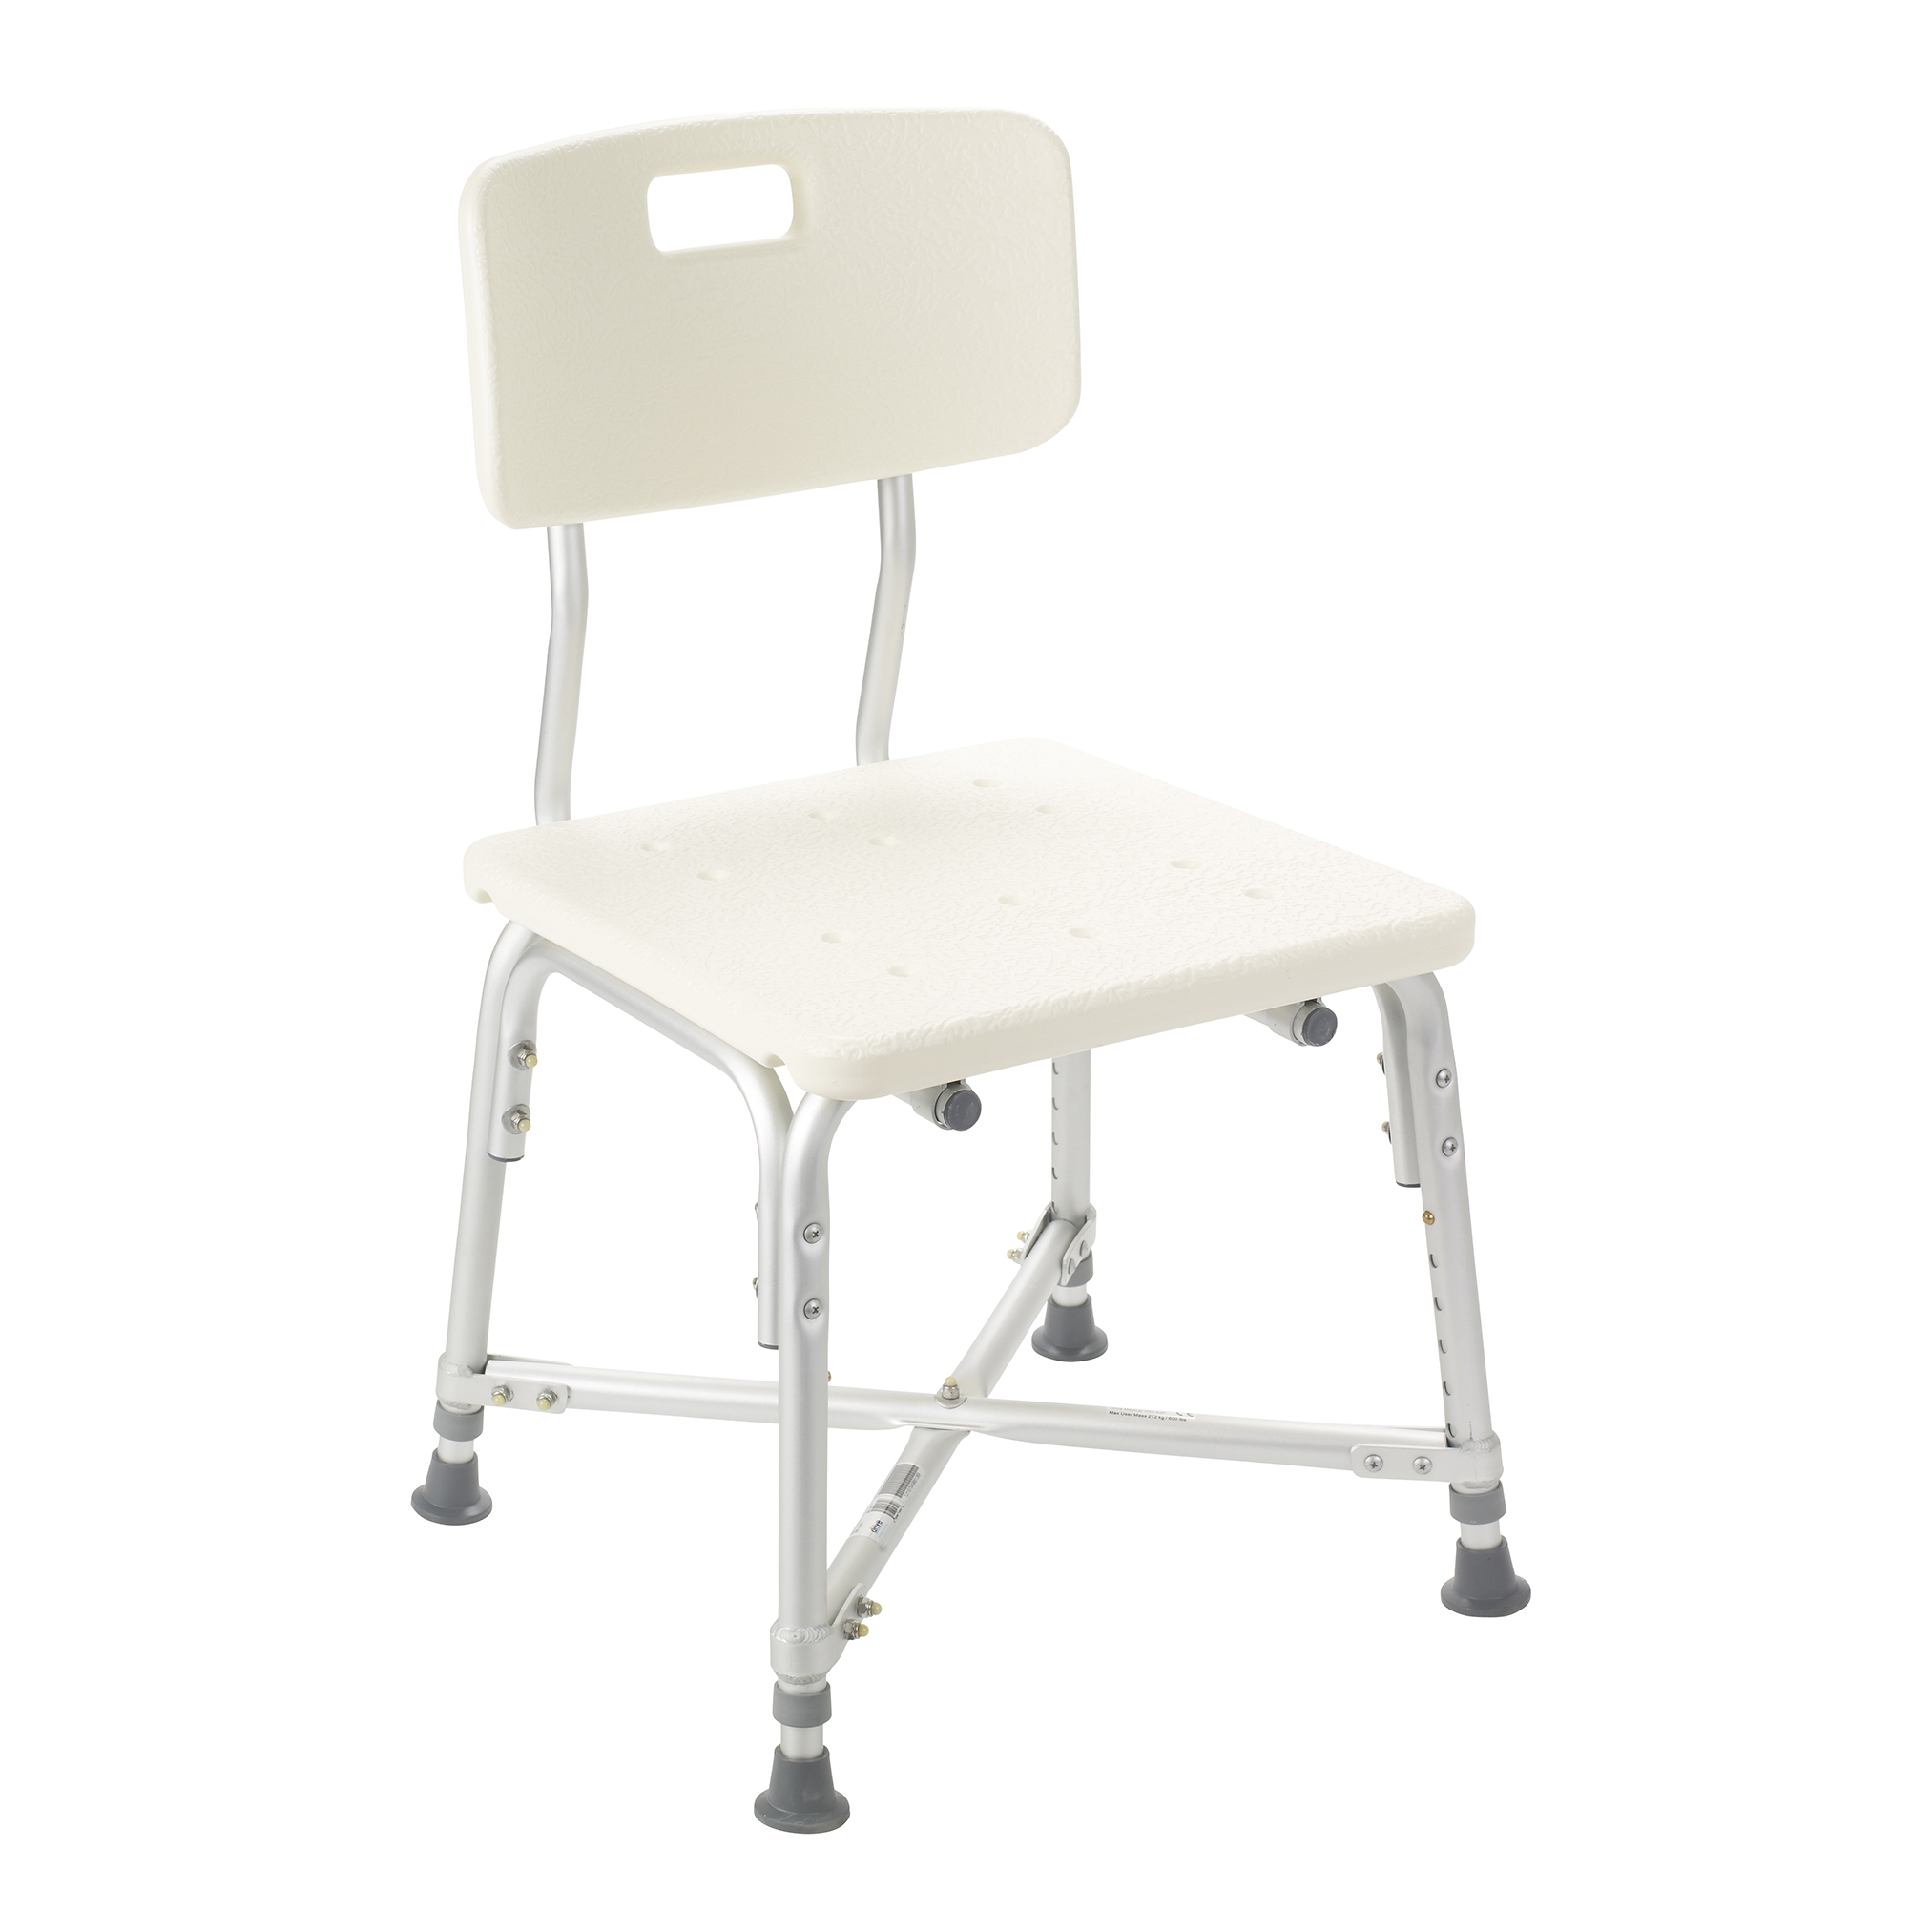 Heavy Duty Bariatric Bath Bench with Back @MedicalGrace.com